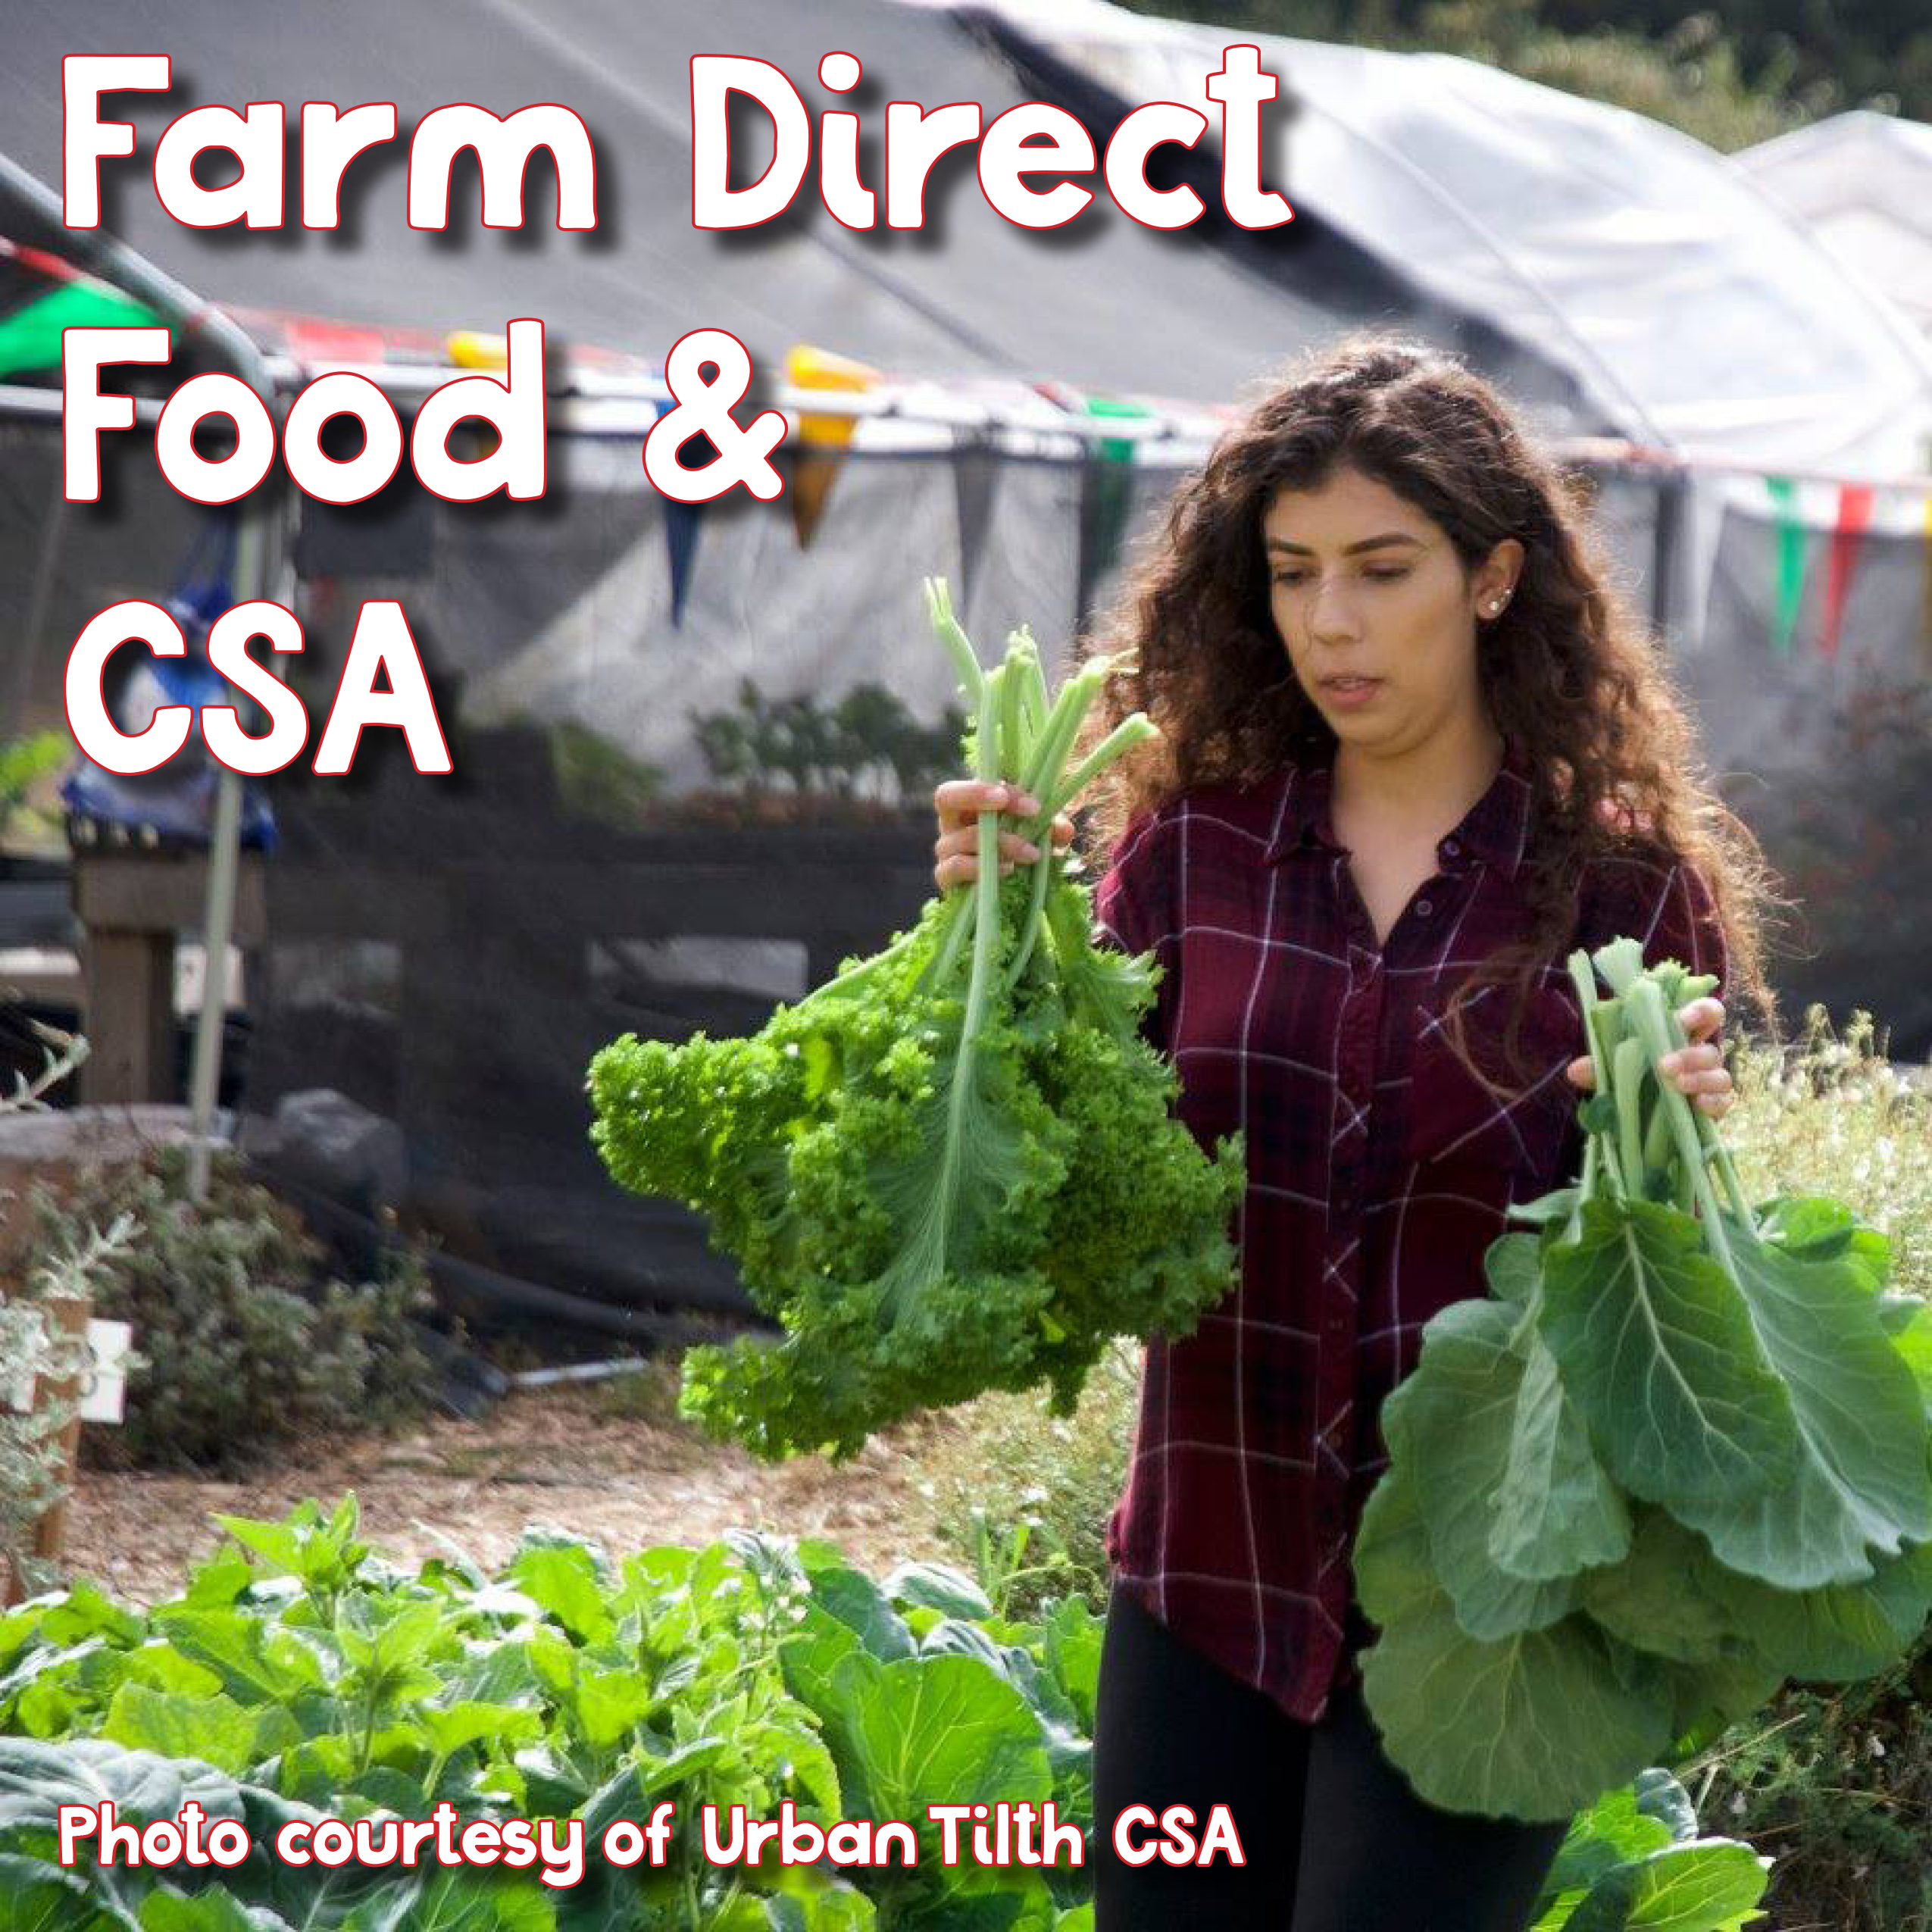 FarmDirect